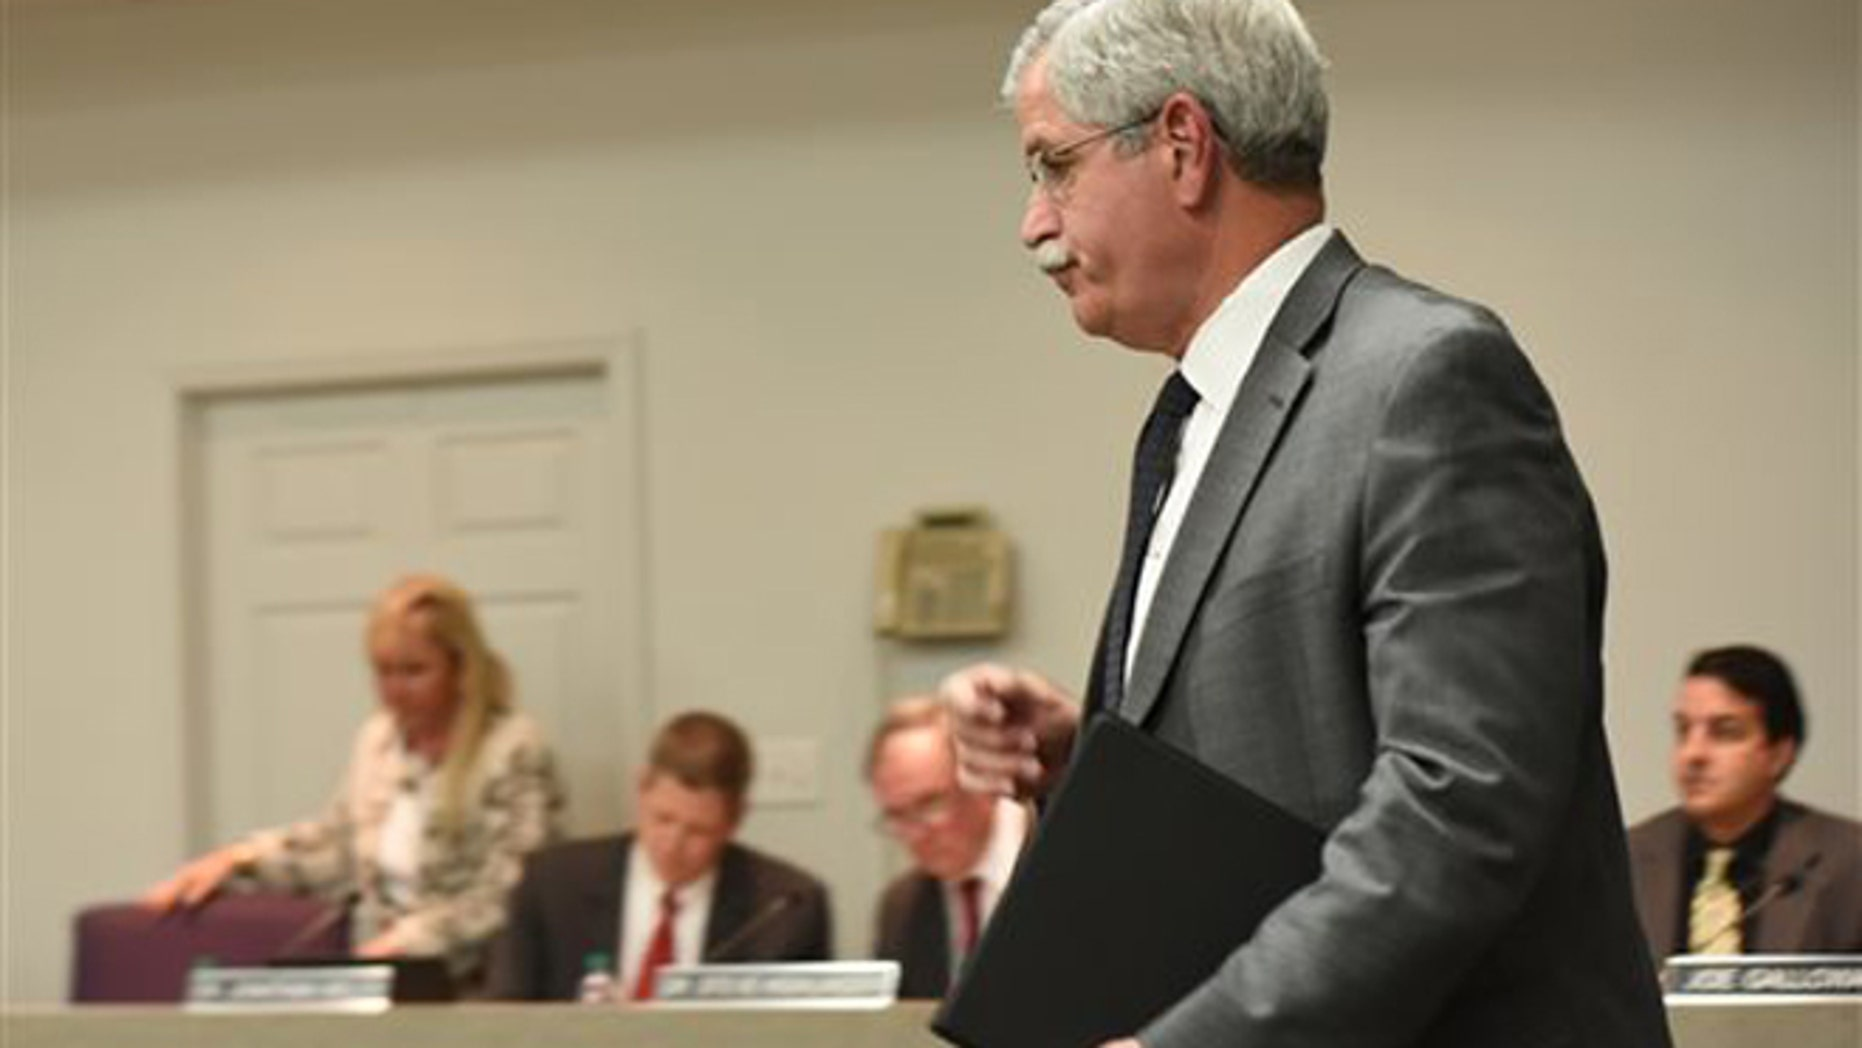 Hamilton County Schools Superintendent Rick Smith enters a school board meeting room before a short public meeting in Chattanooga, Tenn., Wednesday, Jan. 6, 2016.